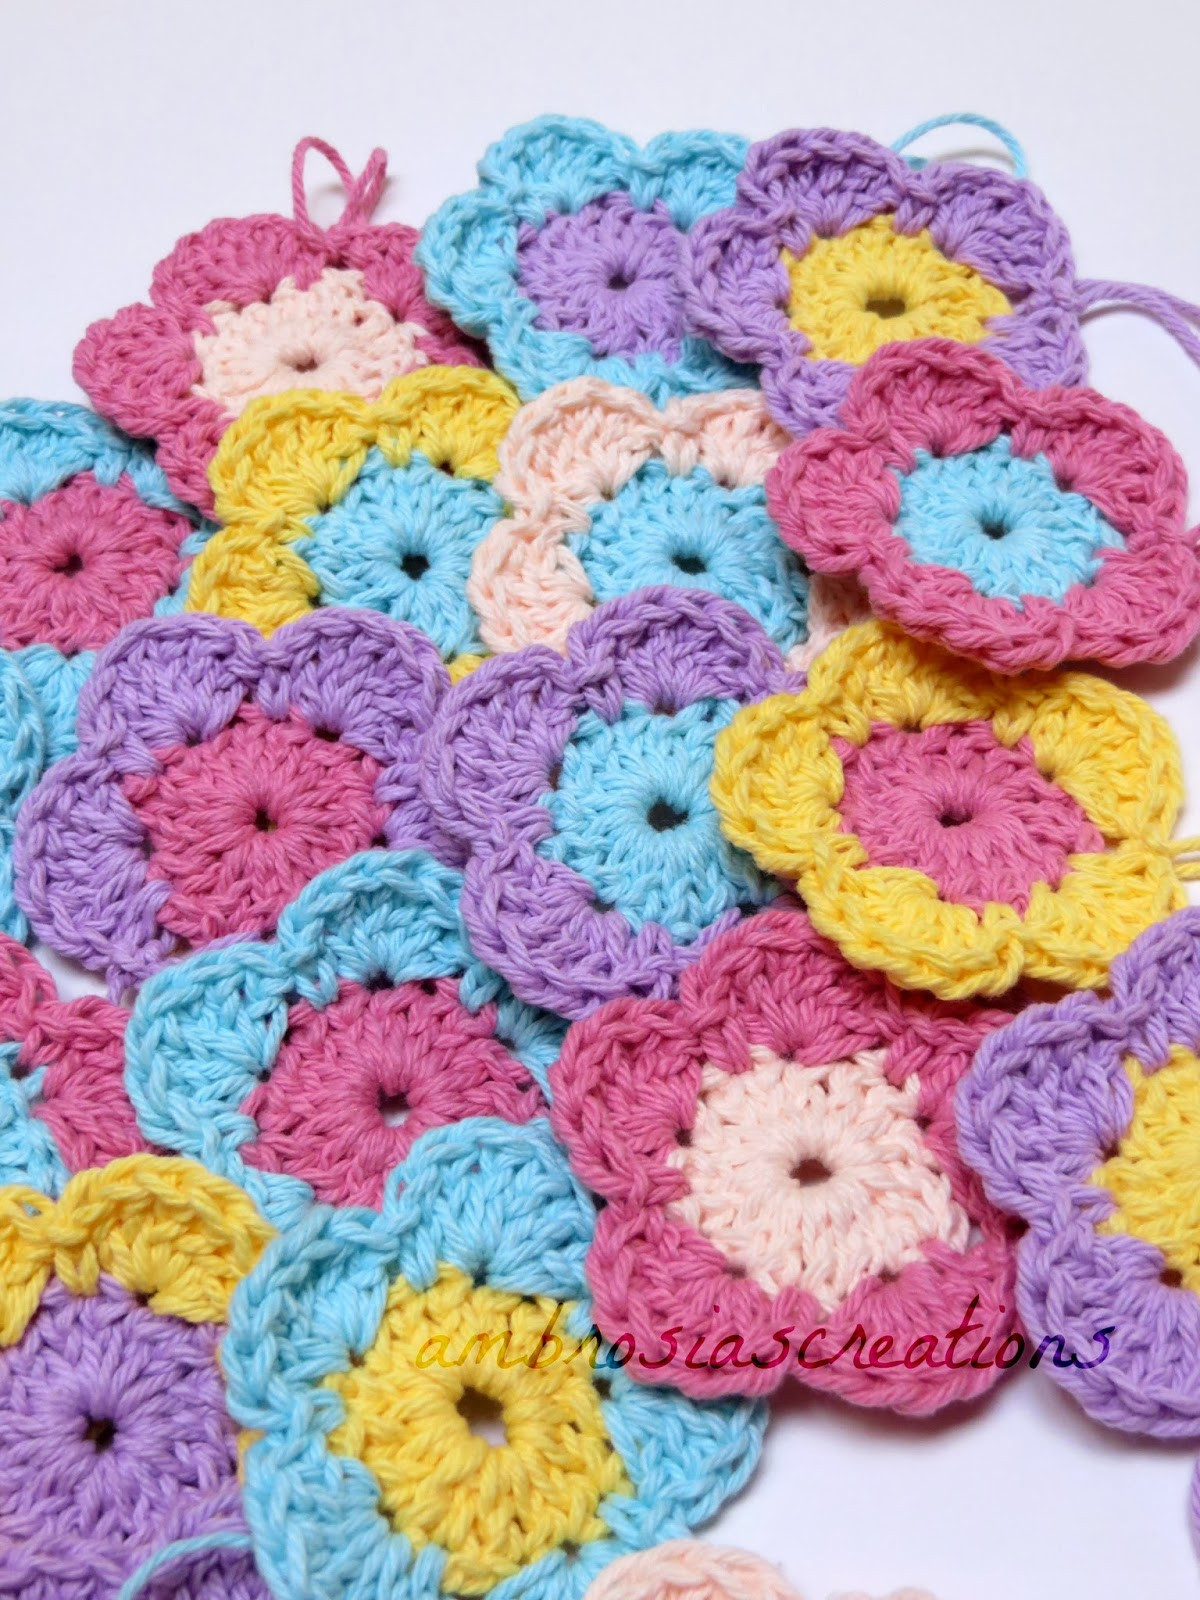 Crochet Flowers Awesome Ambrosia S Creations Pattern Simple Crochet Flowers Of Amazing 50 Pics Crochet Flowers